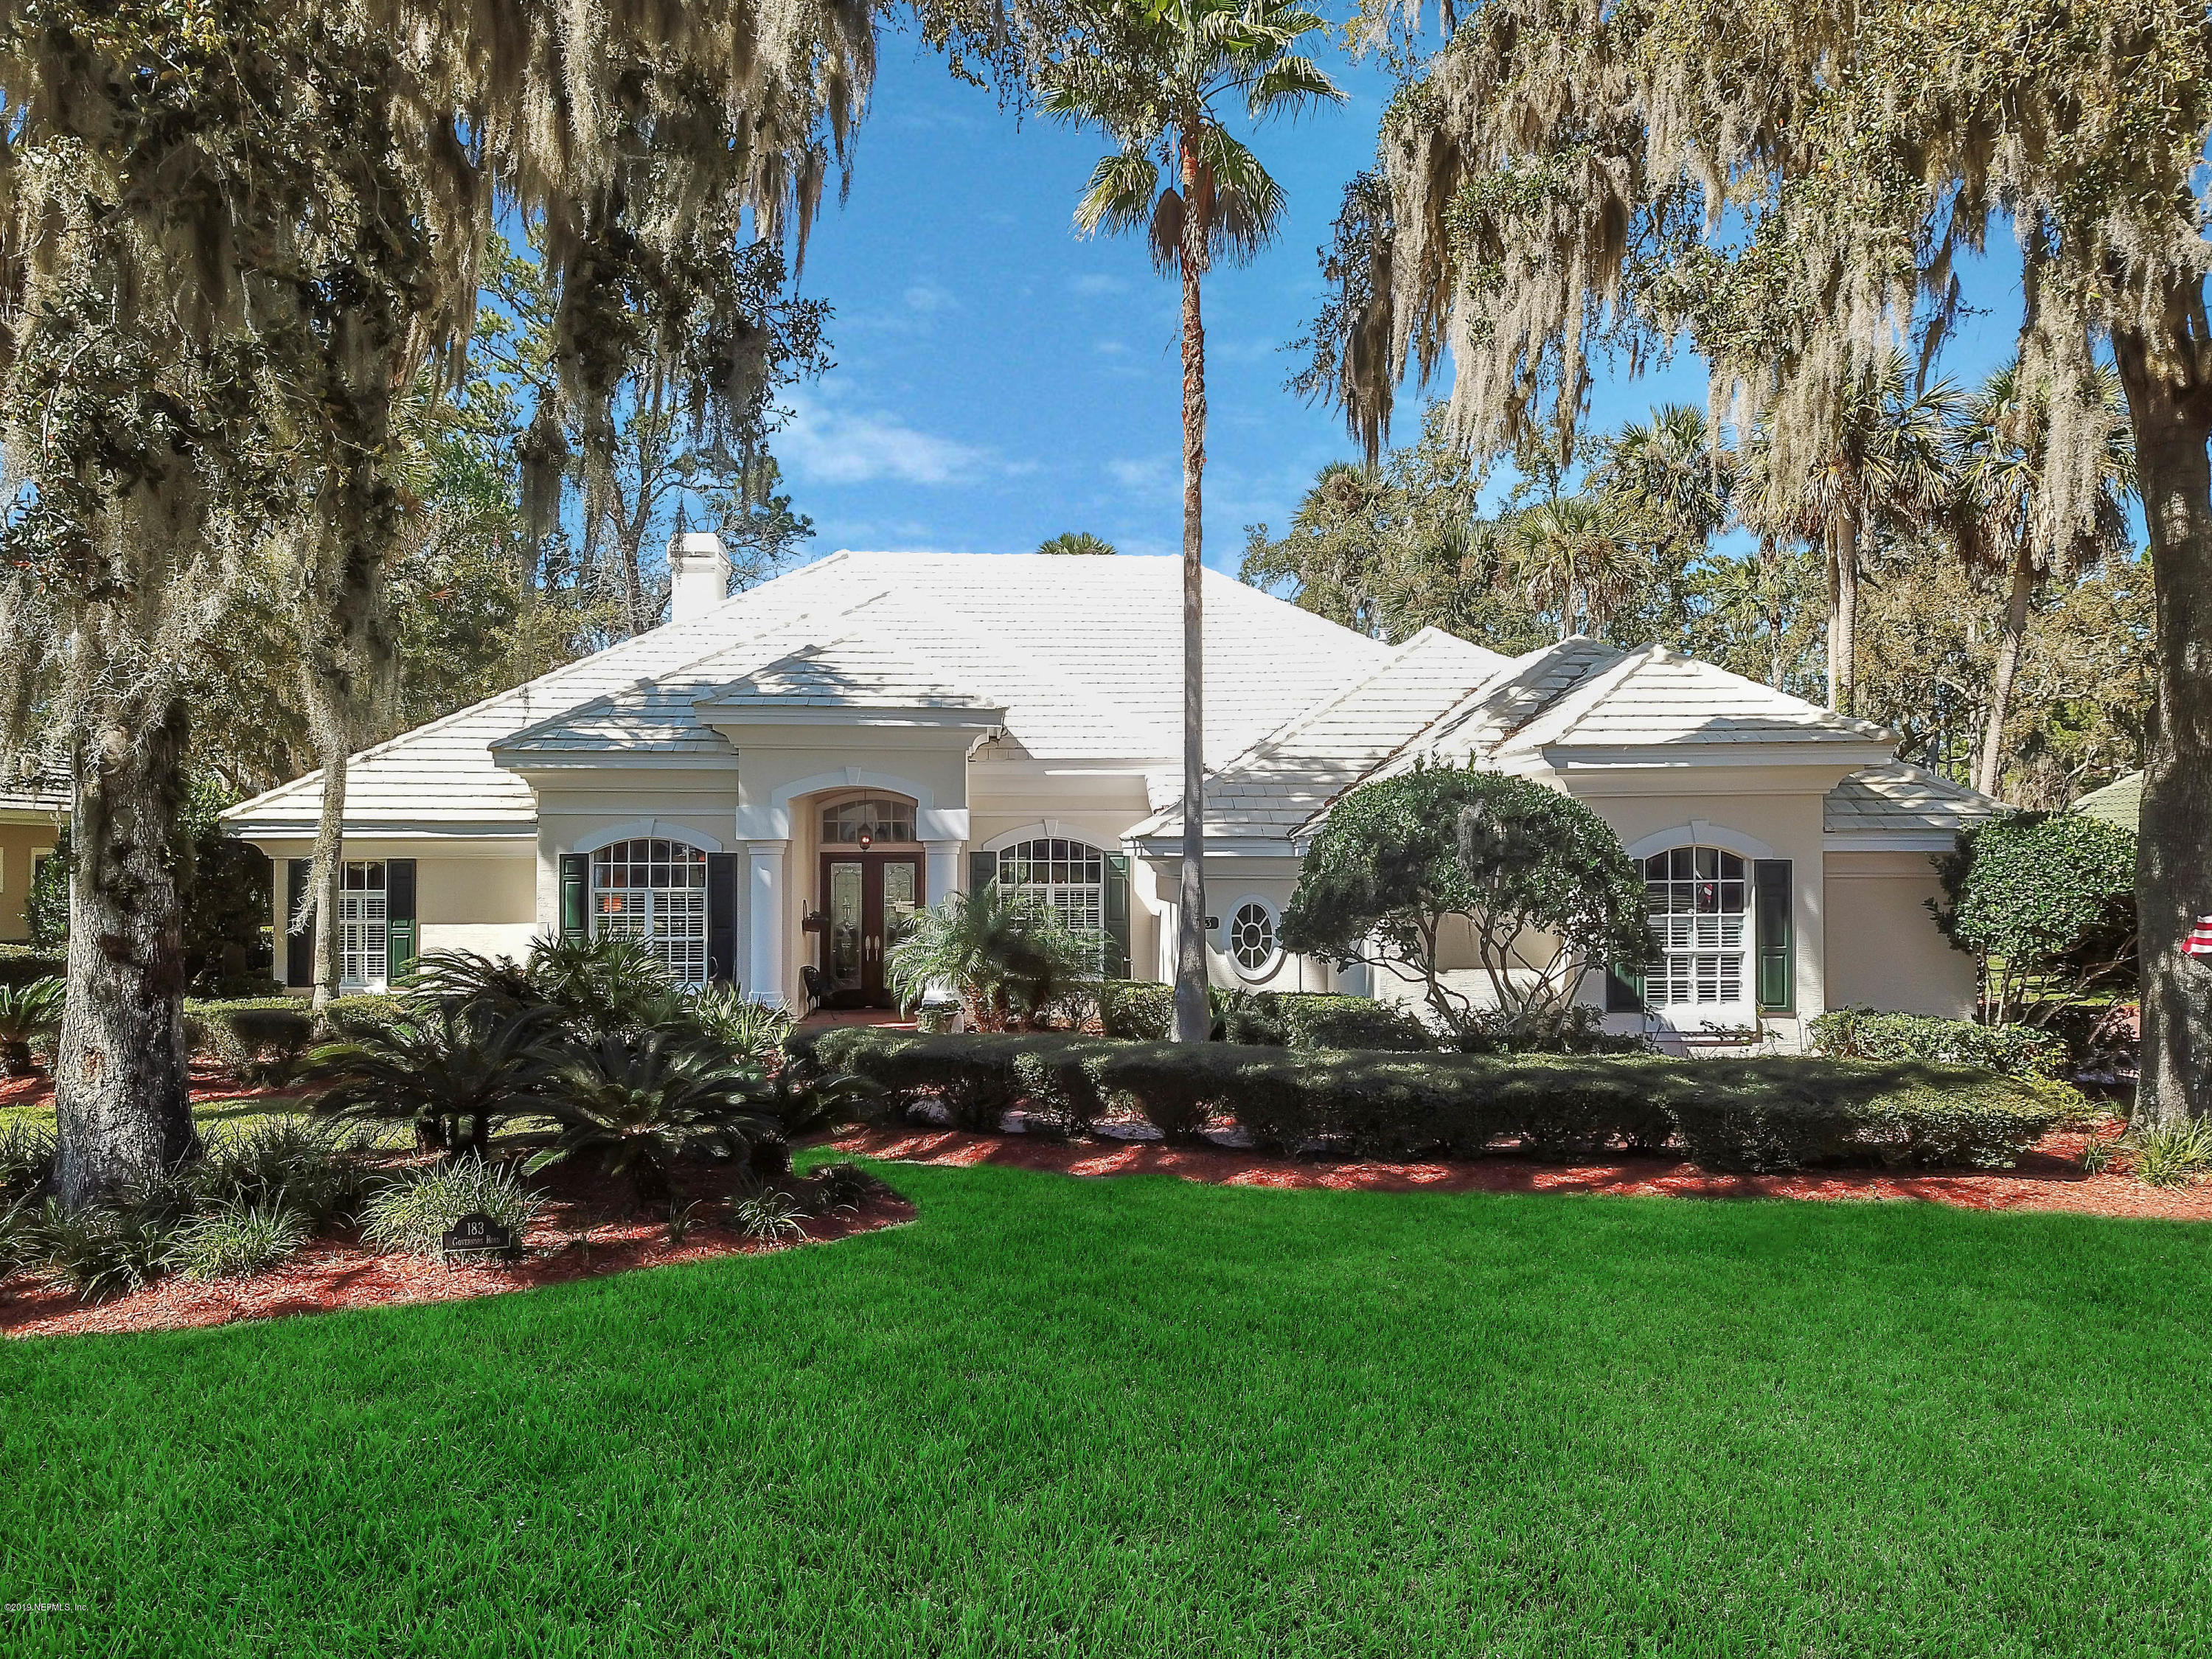 183 GOVERNORS, PONTE VEDRA BEACH, FLORIDA 32082, 4 Bedrooms Bedrooms, ,3 BathroomsBathrooms,Residential - single family,For sale,GOVERNORS,986347